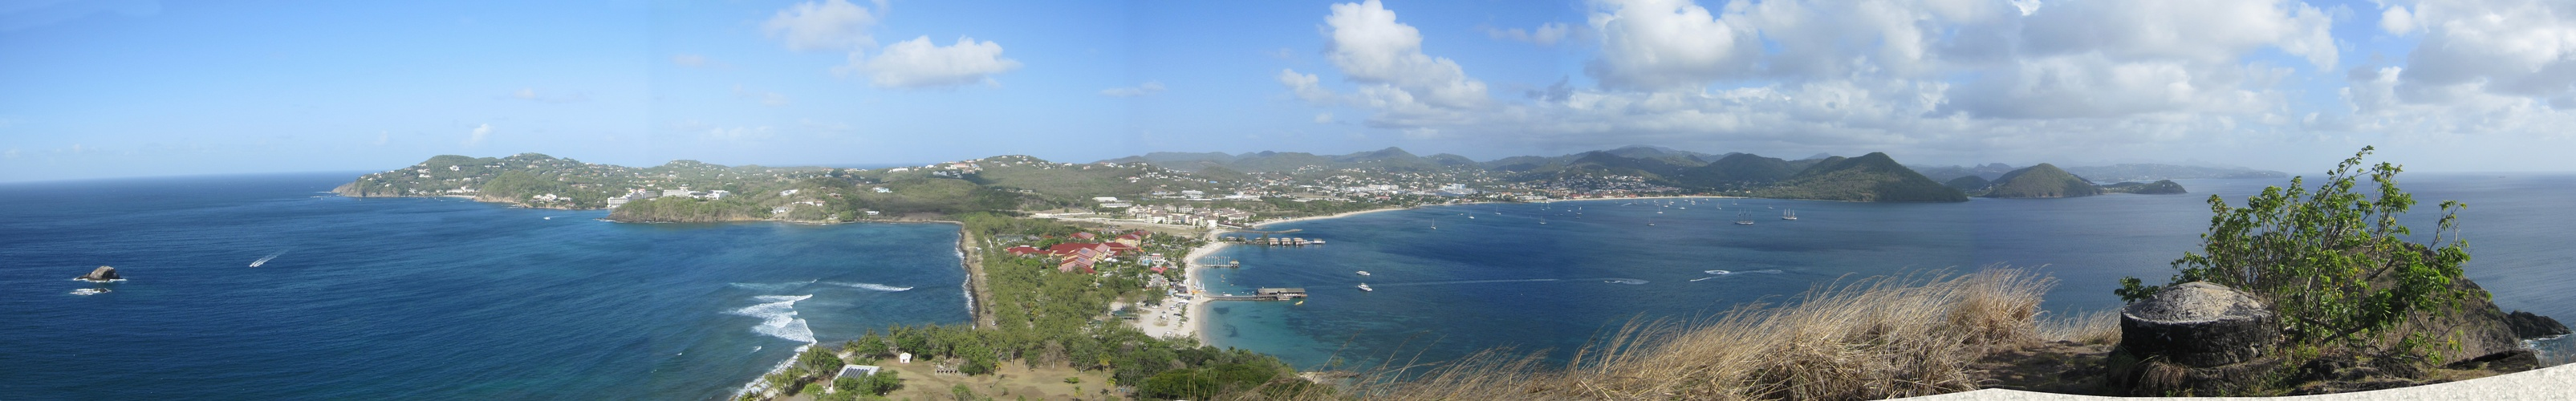 Panoramic view from Signal Peak on Pigeon Island - Cap Estate to the left, the red roofs of Sandals in the middle on the causeway,